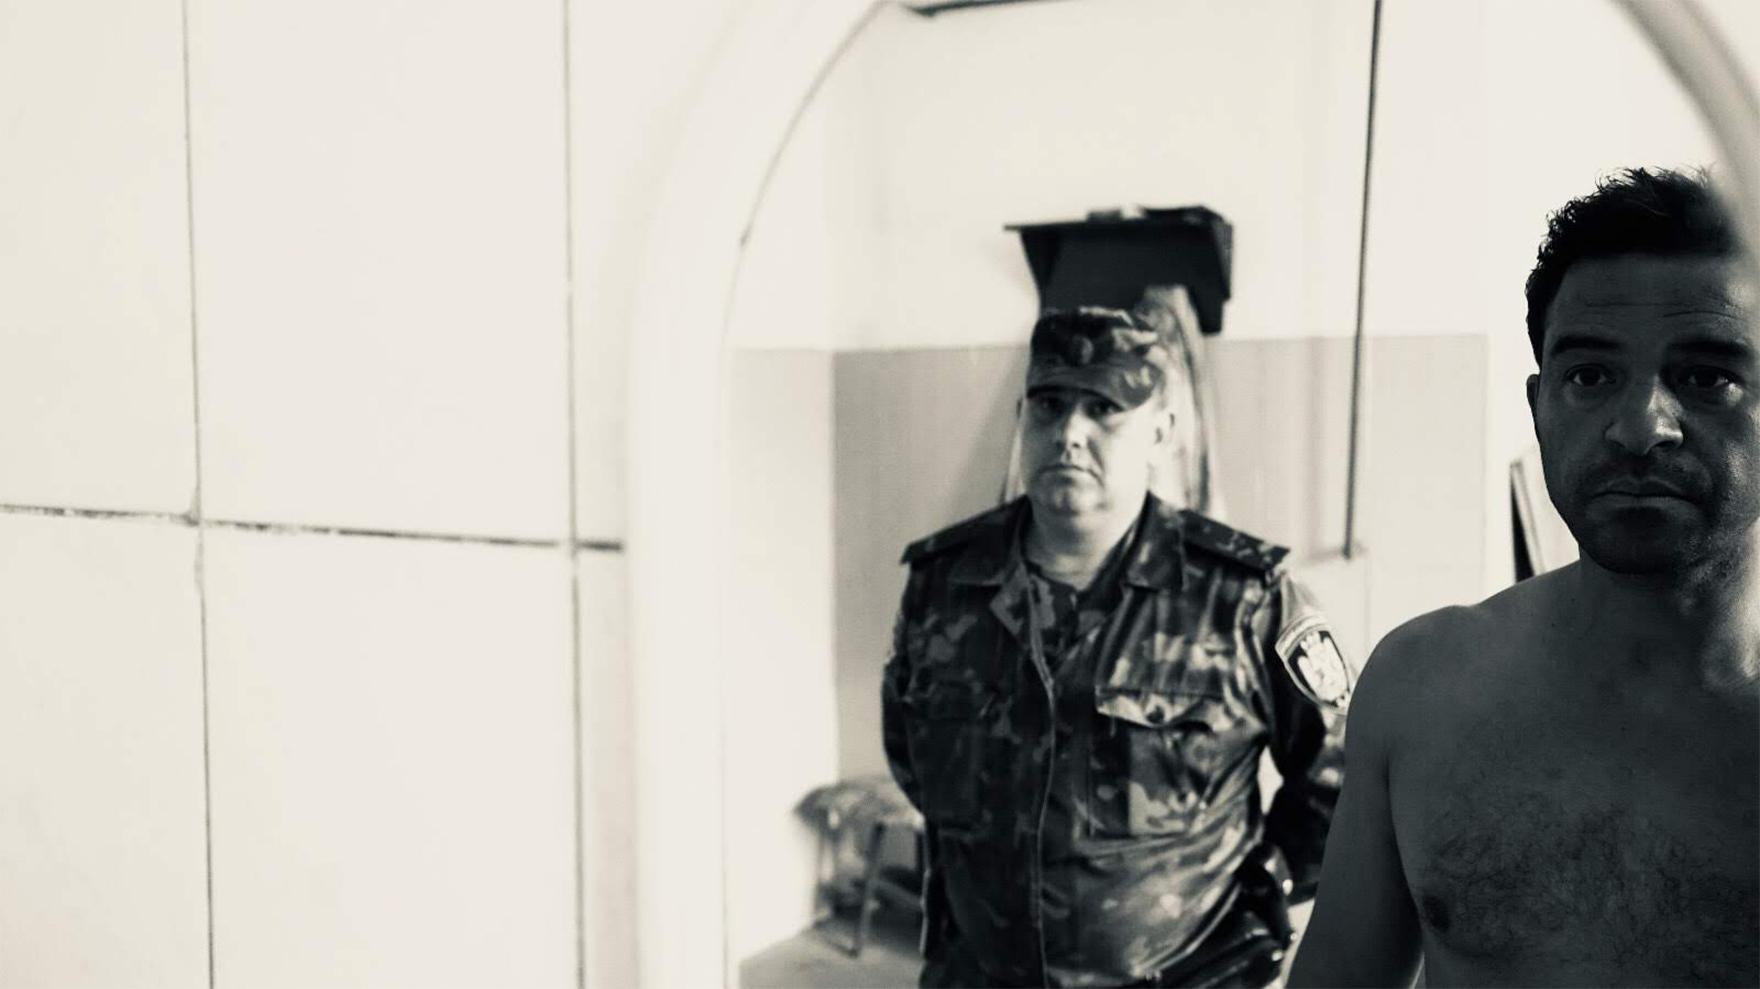 RR-watched-by-Guard-in-Ukraine-Prison